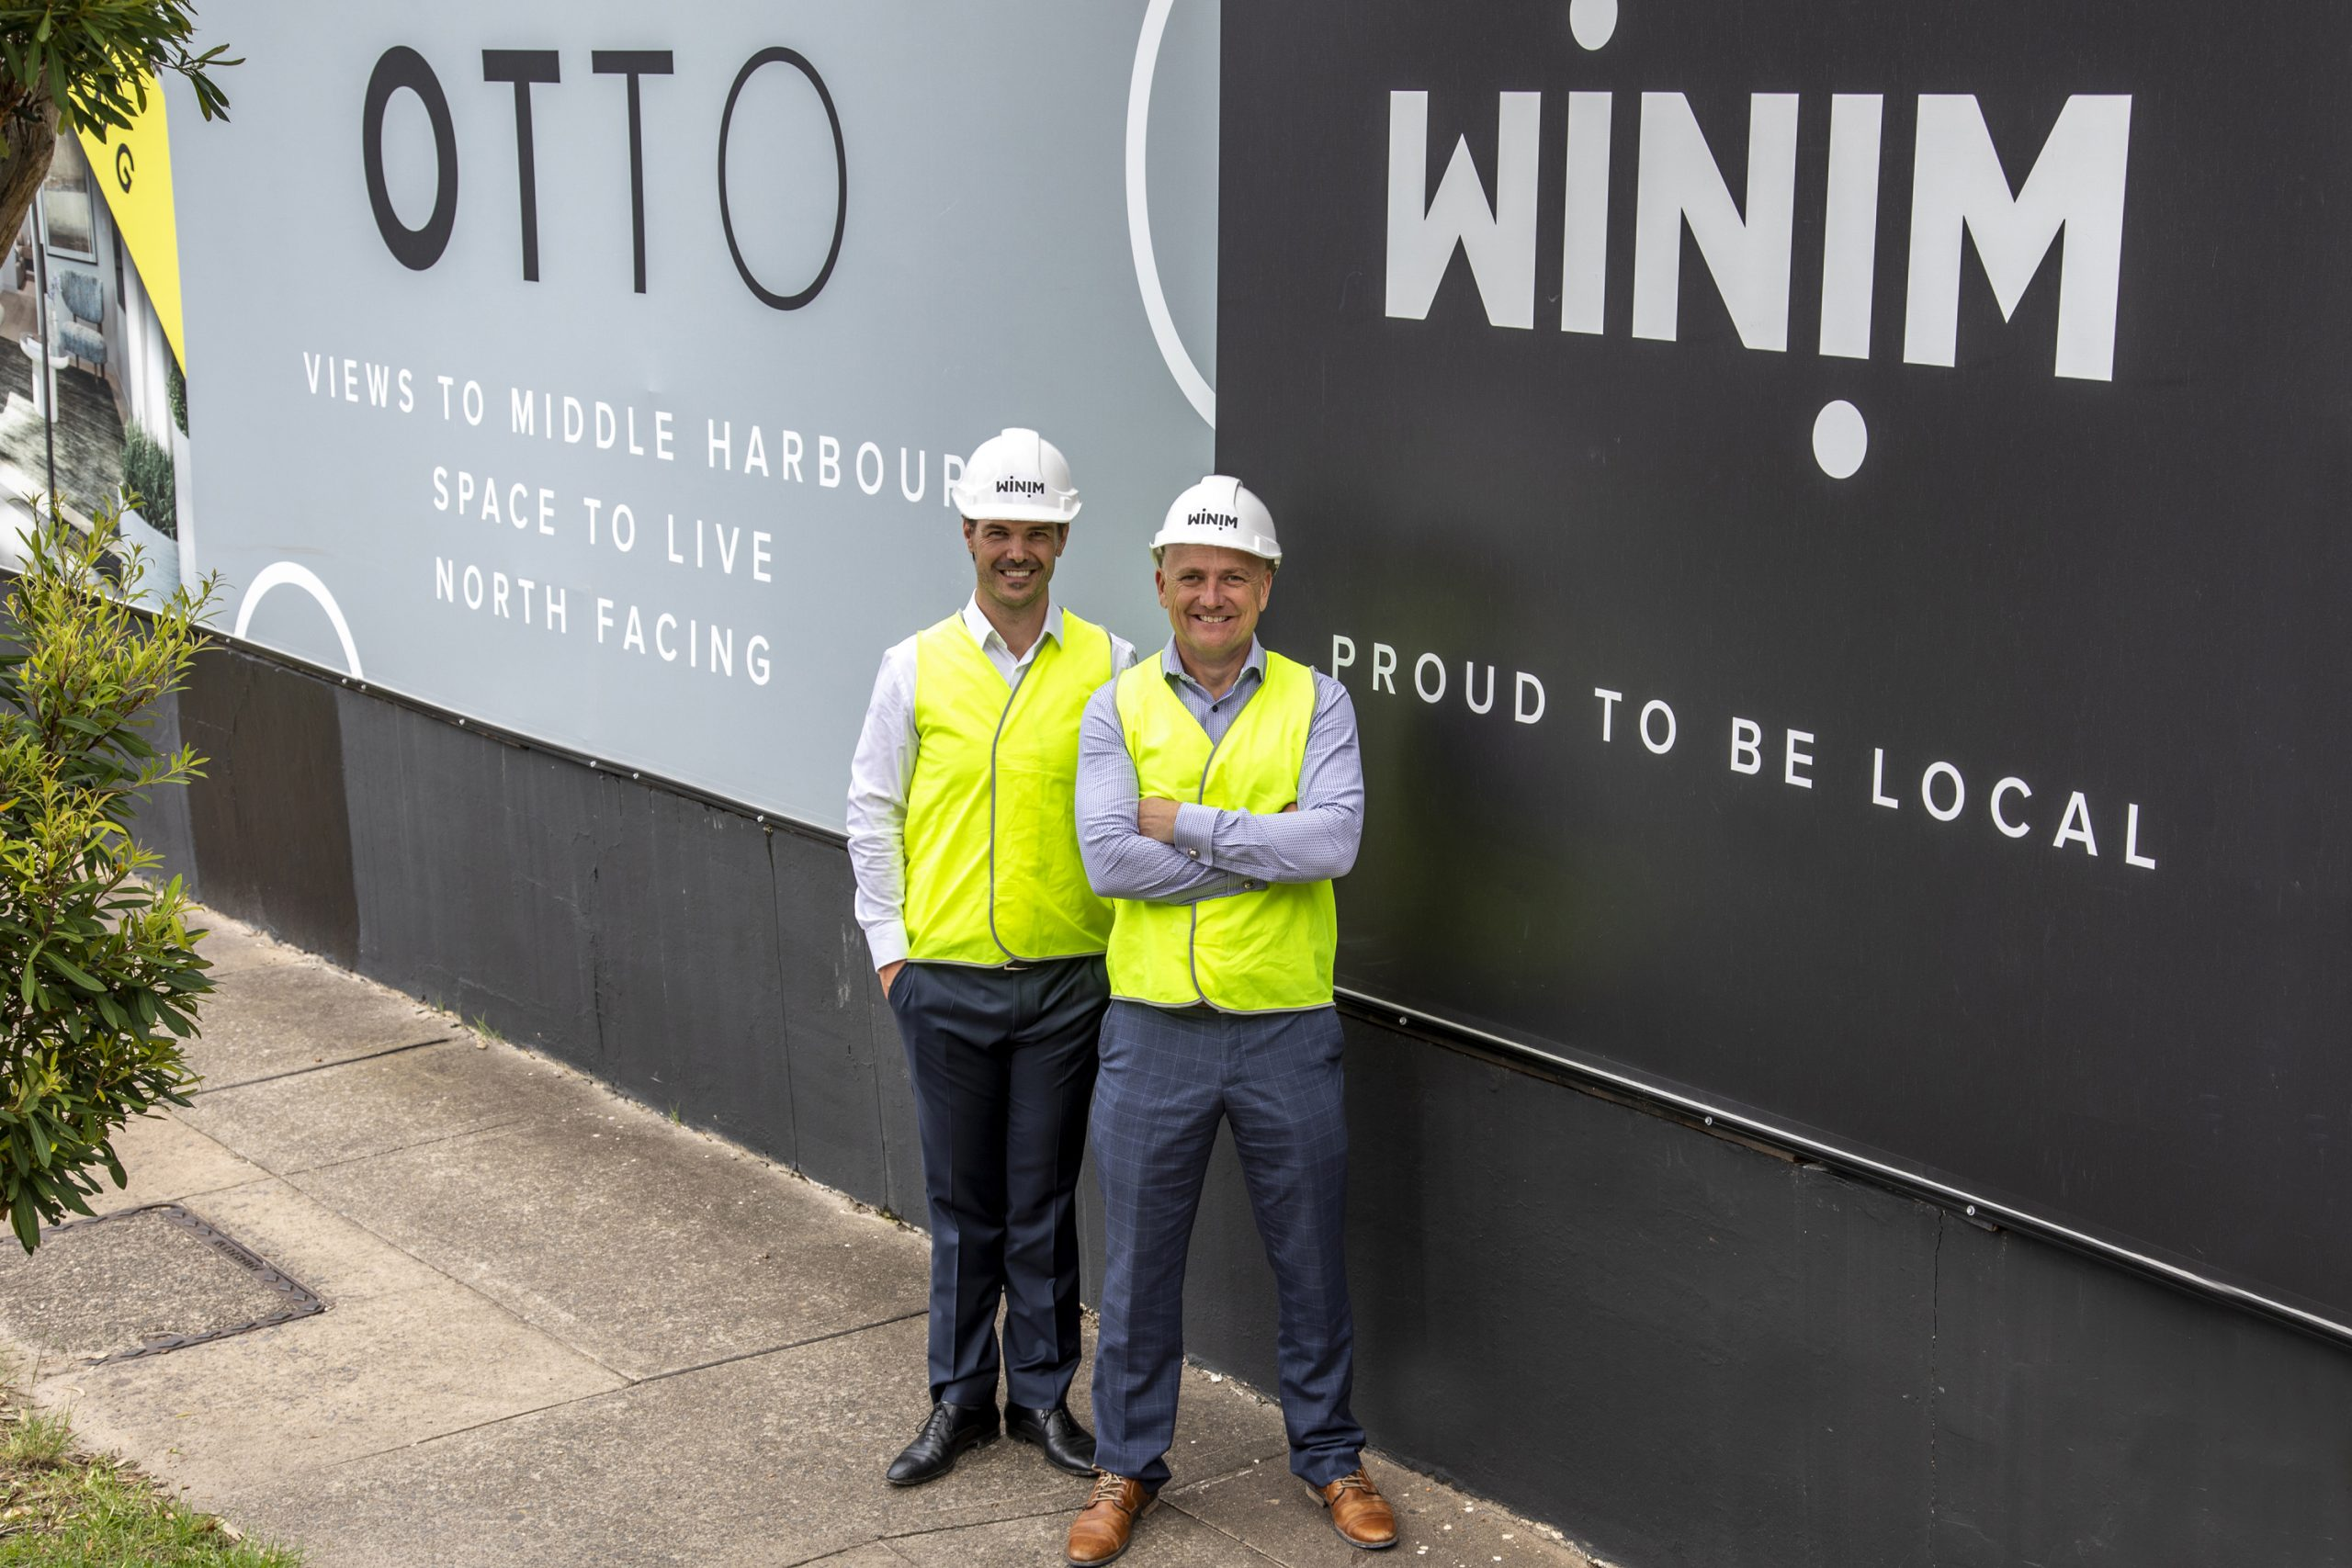 WINIM starts construction of new high-end boutique apartments on Sydney's Lower North Shore – Otto, Cremorne